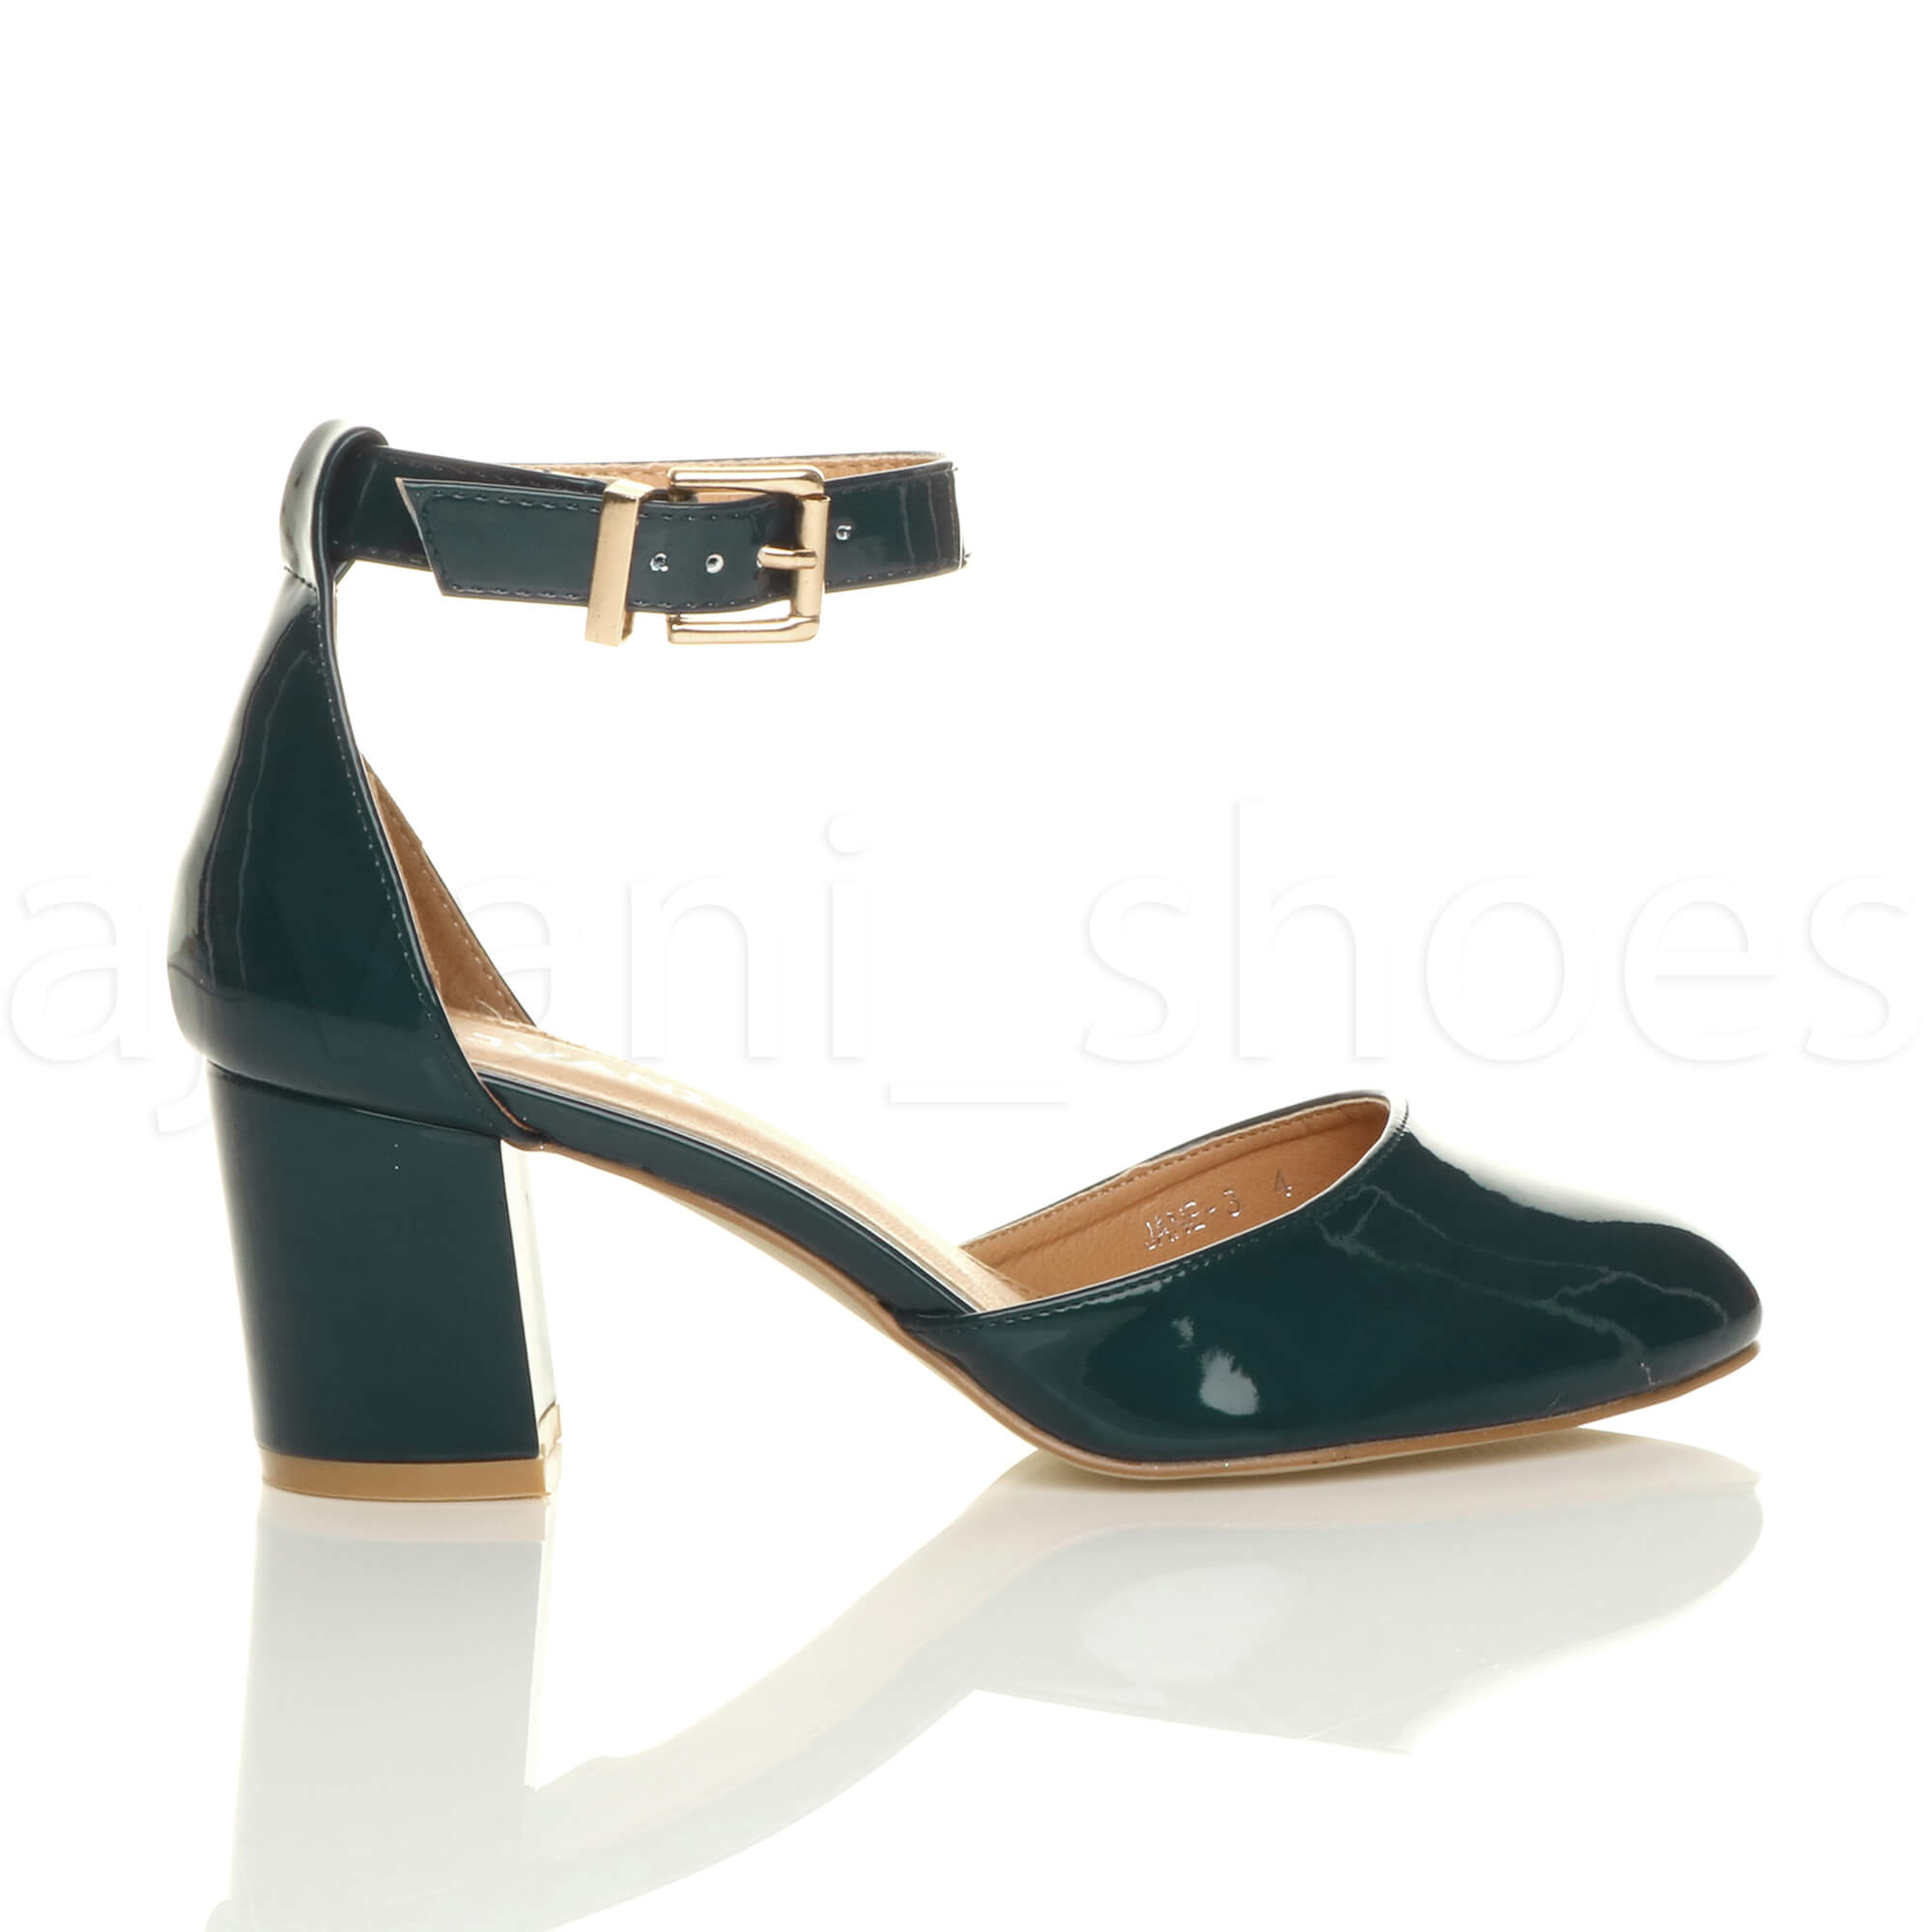 WOMENS-LADIES-LOW-MID-BLOCK-HEEL-ANKLE-STRAP-MARY-JANE-COURT-SHOES-SANDALS-SIZE thumbnail 187